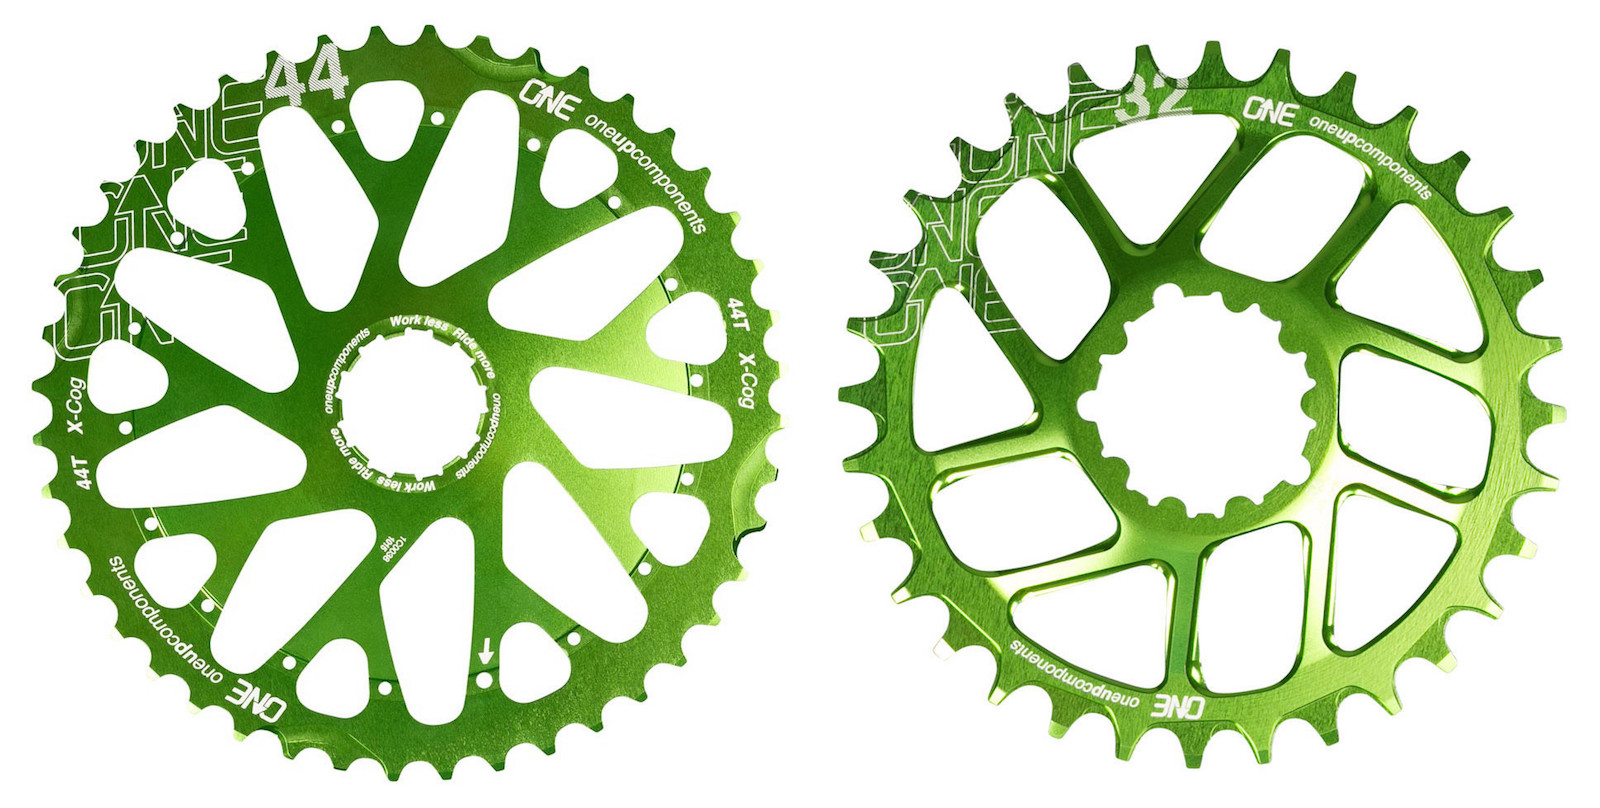 OneUp-Components-SDM-32T-Narrow-Wide-Sram-Direct-Mount-Chainring-Blk-Front-966_1024x1024 2